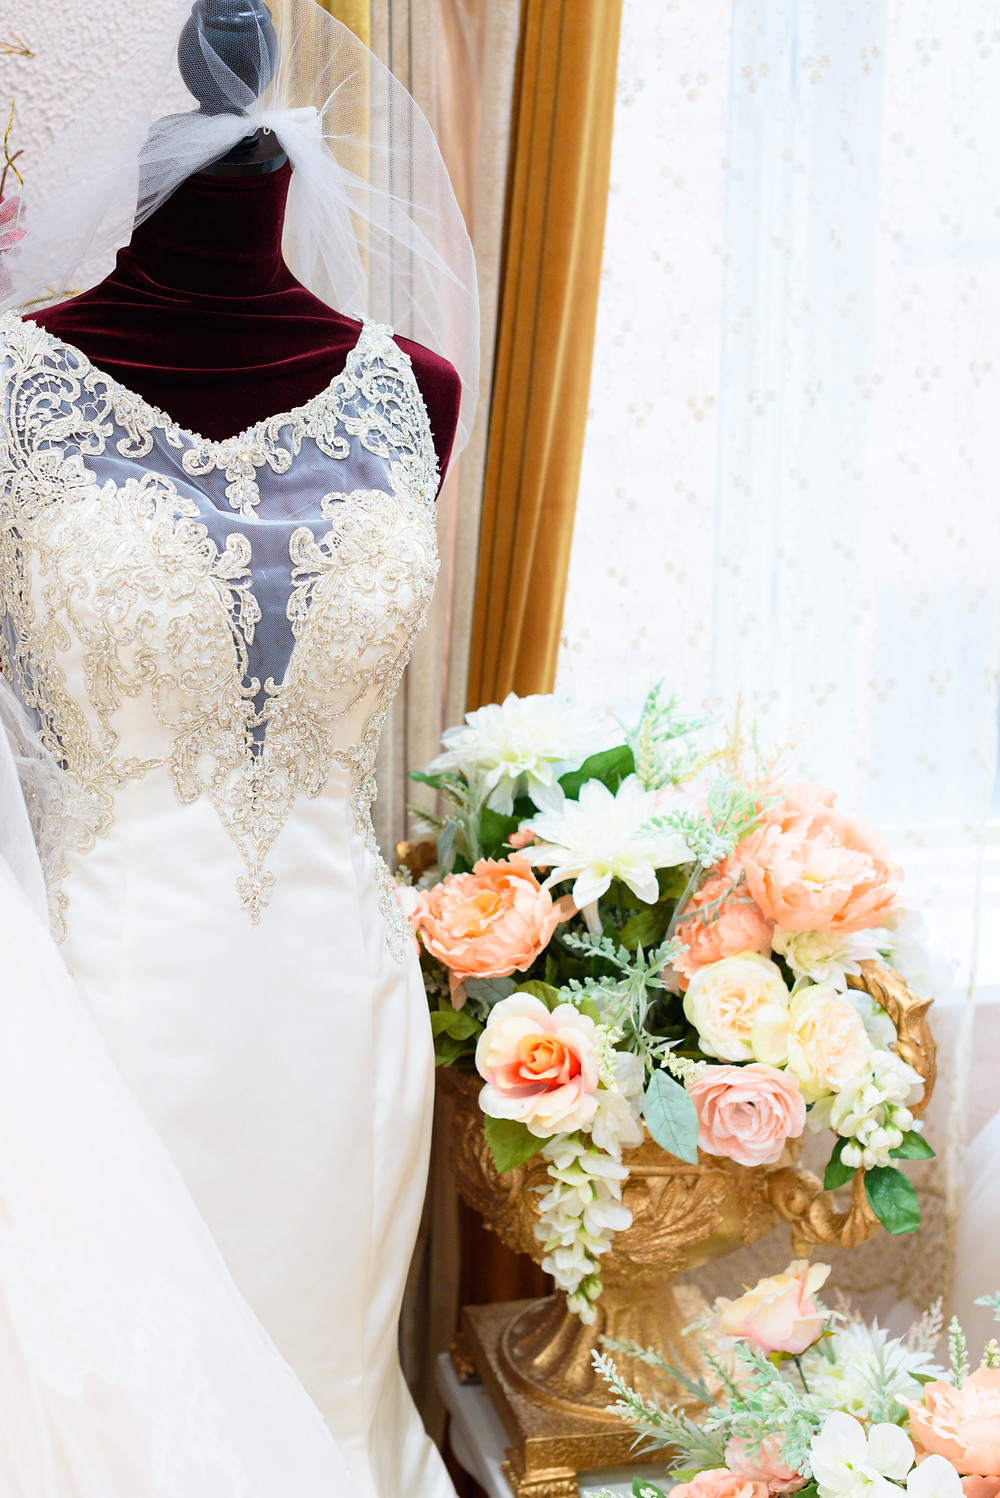 A beautiful beaded wedding dress on a maniquin at Babette's Gowns. Pictured with a veil and peach roses.